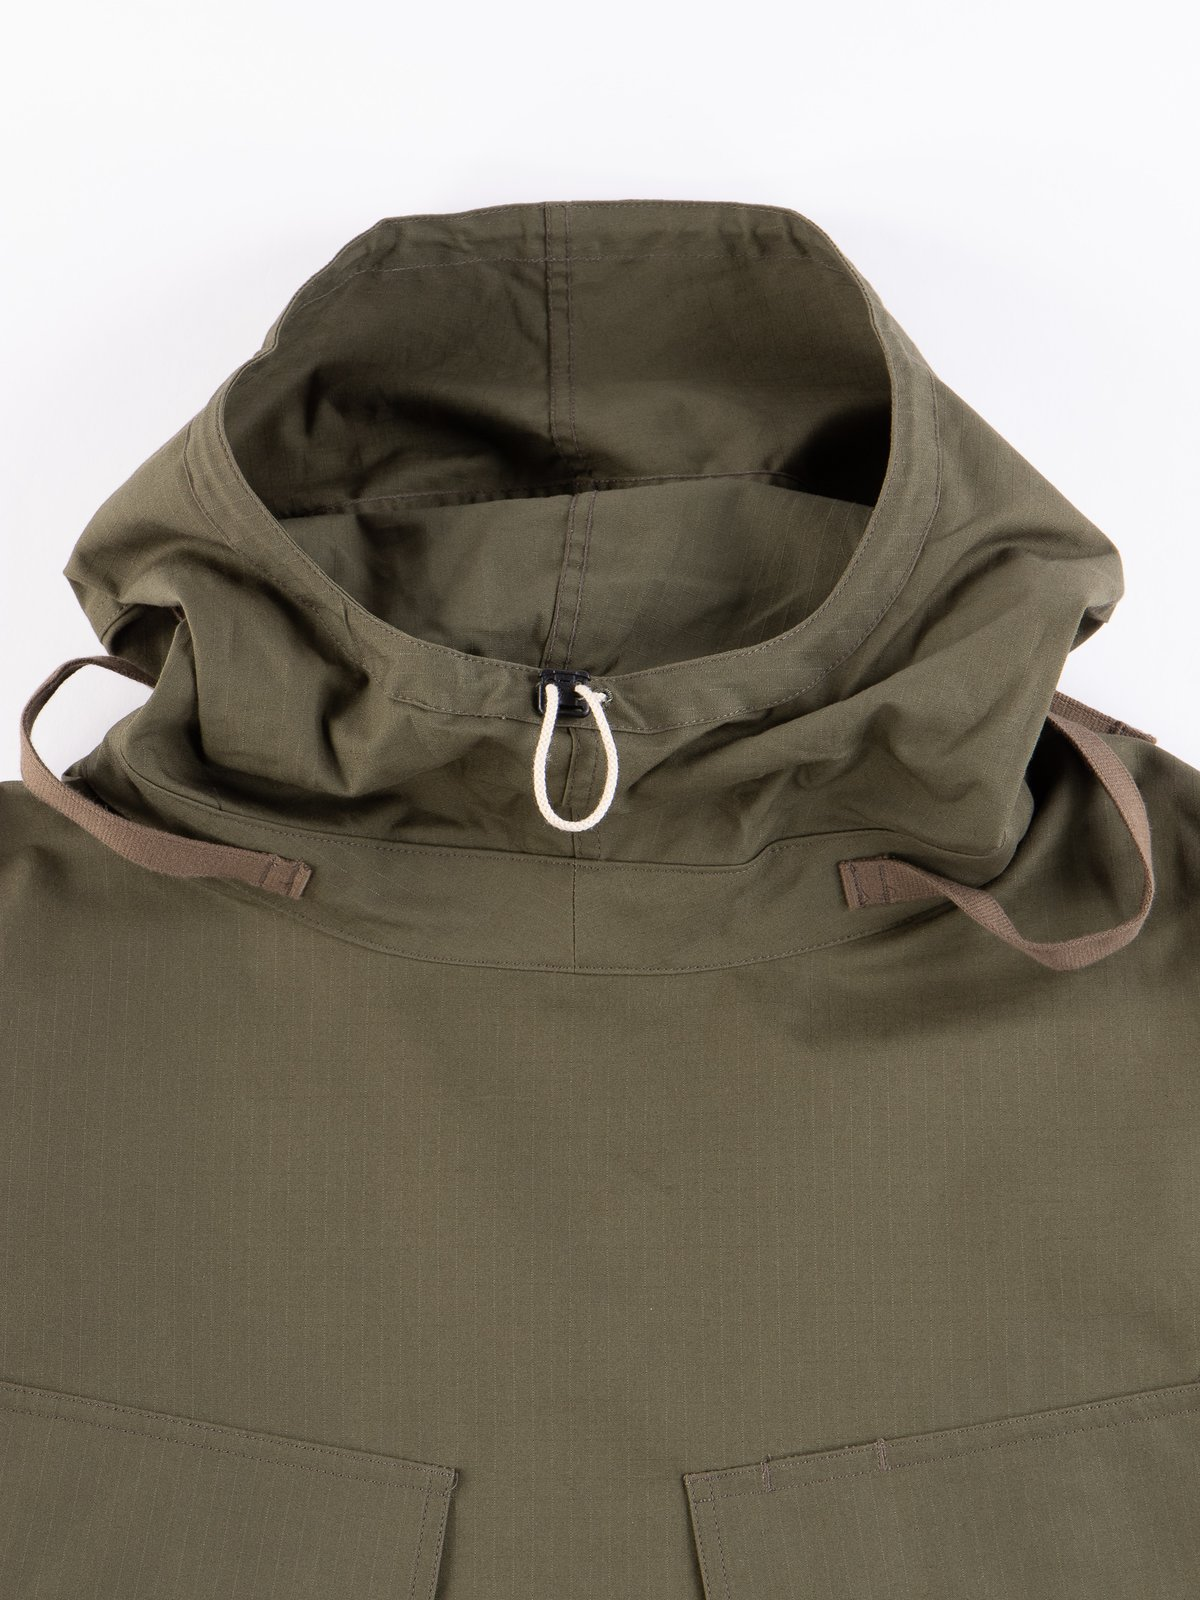 Olive Army Ripstop Salvage Parka - Image 3